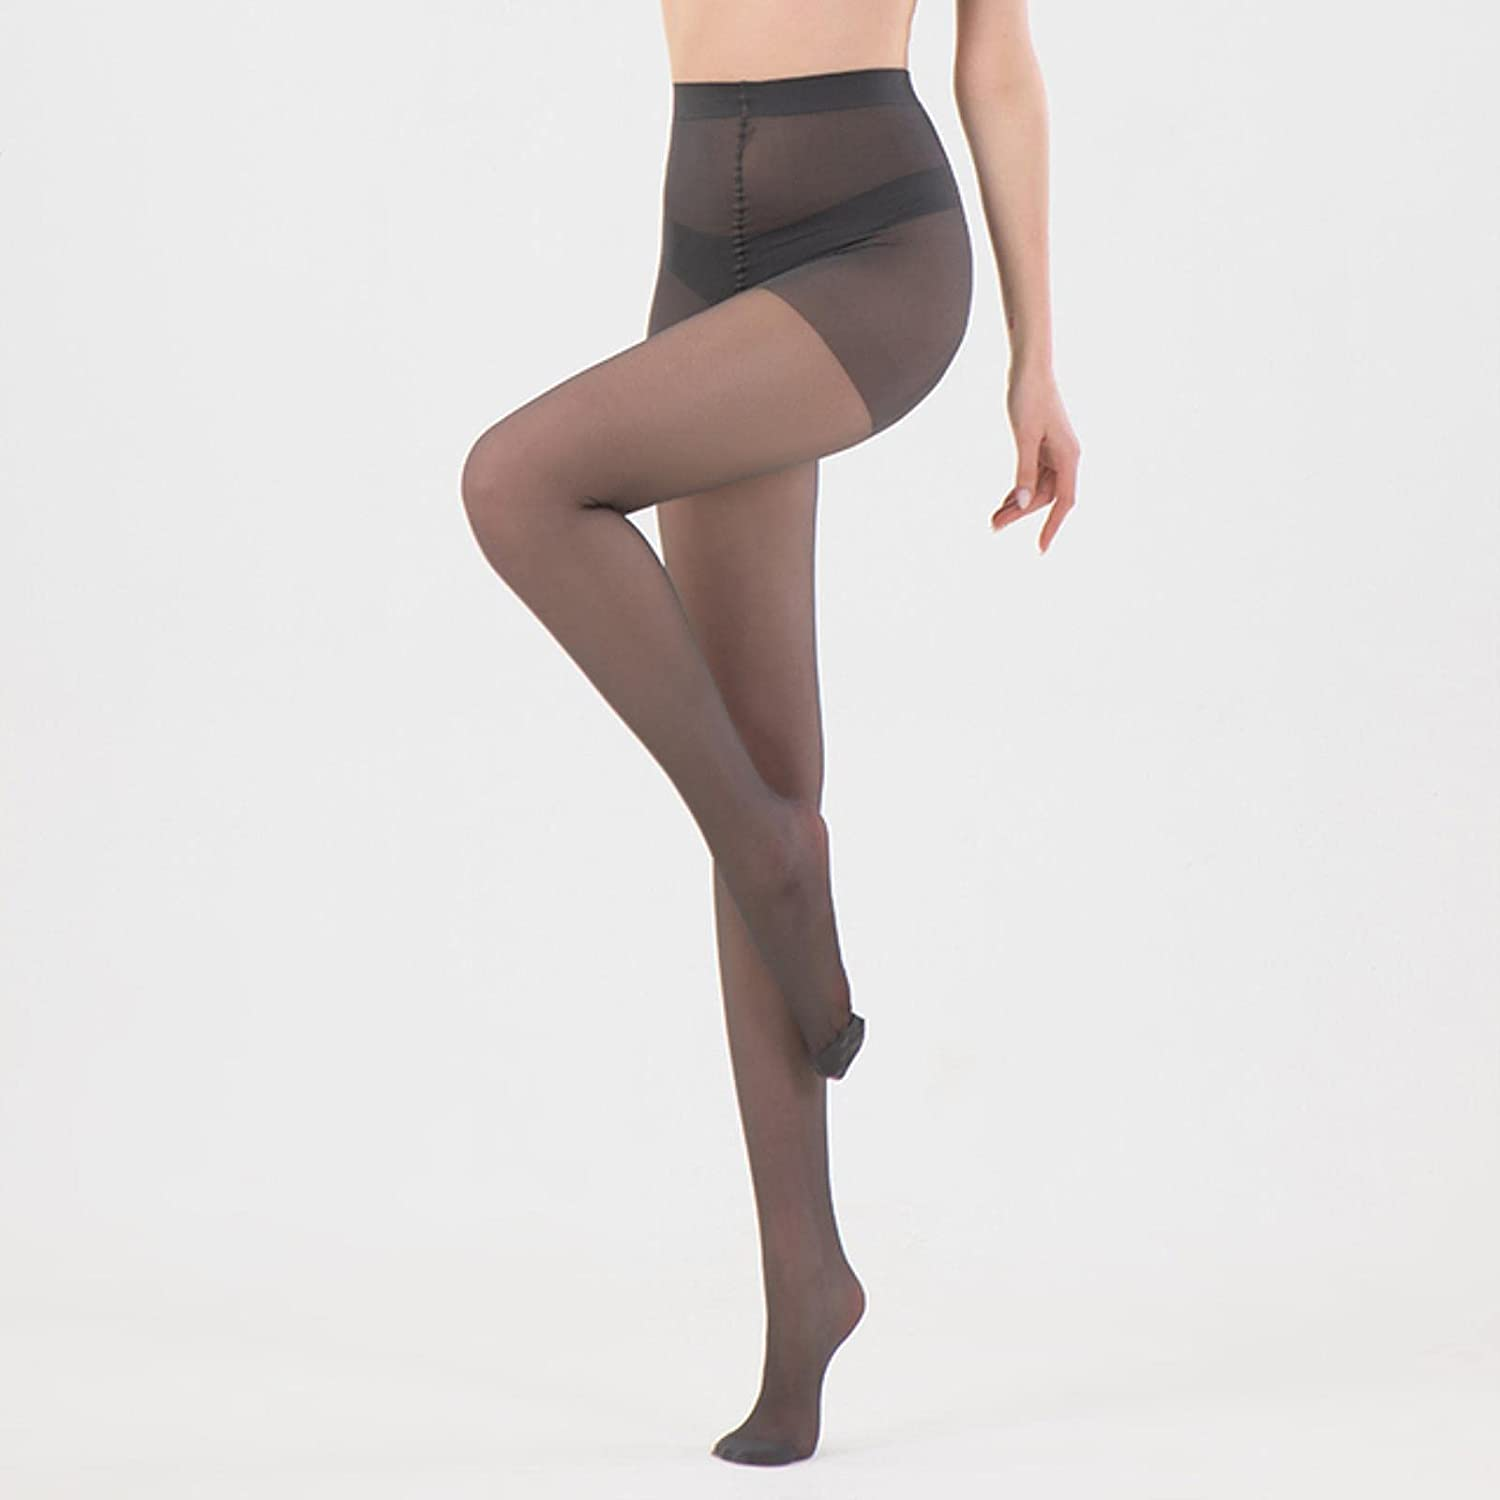 HJJACS 20D Thin Tights Women Queen Size 120kg Pantyhose Elastic Large Nylon Pantyhose Female Plus Size Tights